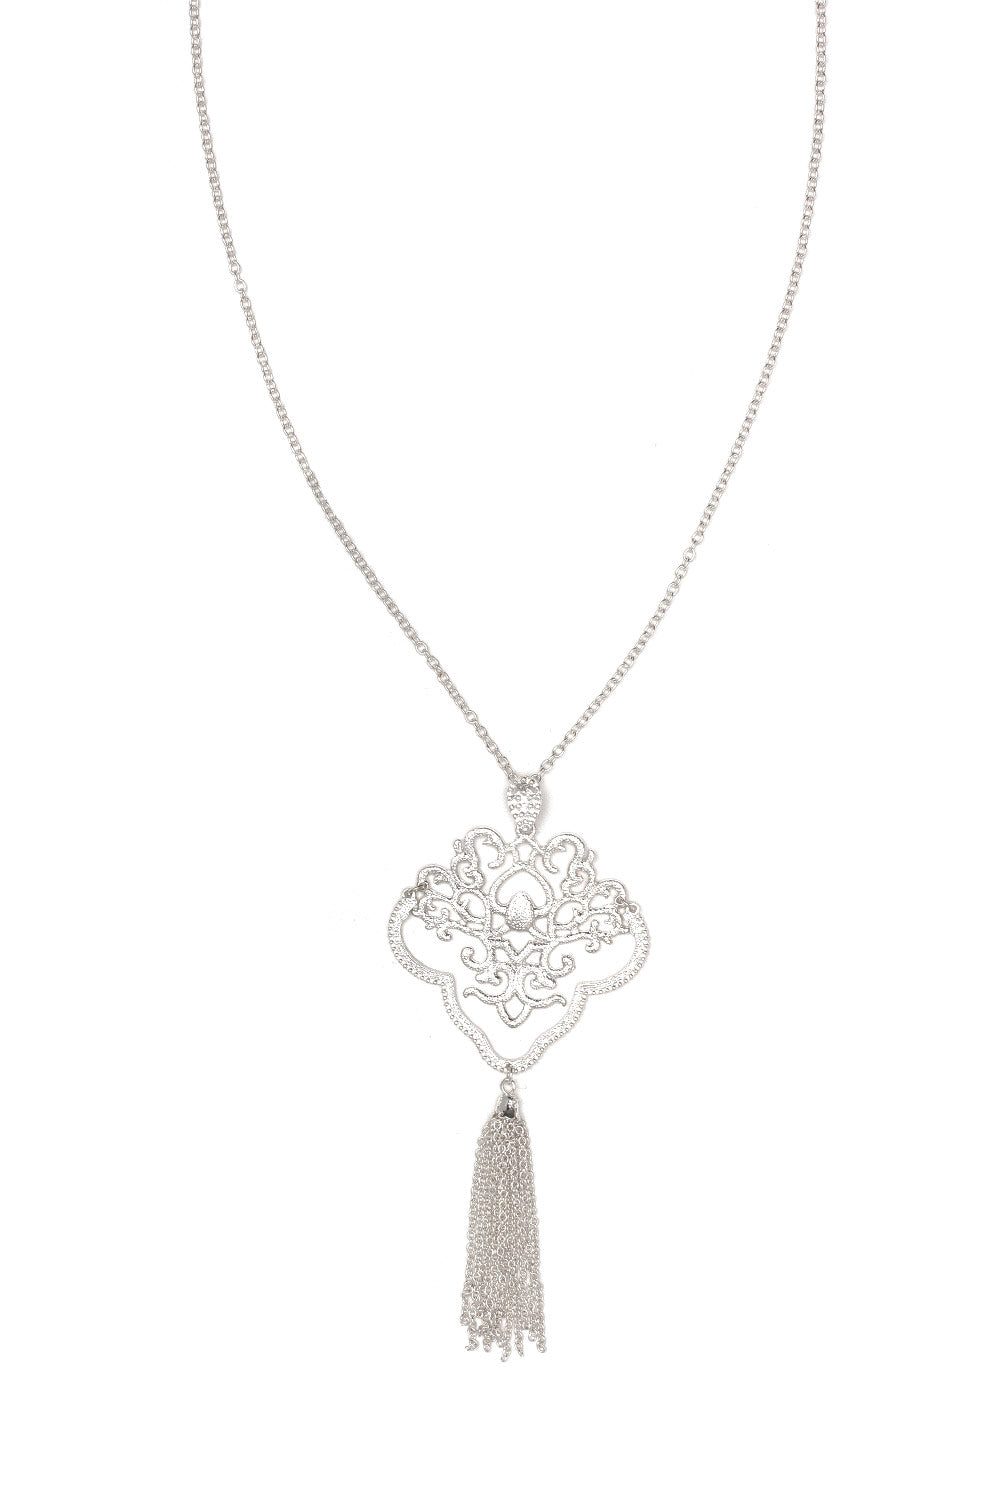 Type 2 Queen's Crest Necklace